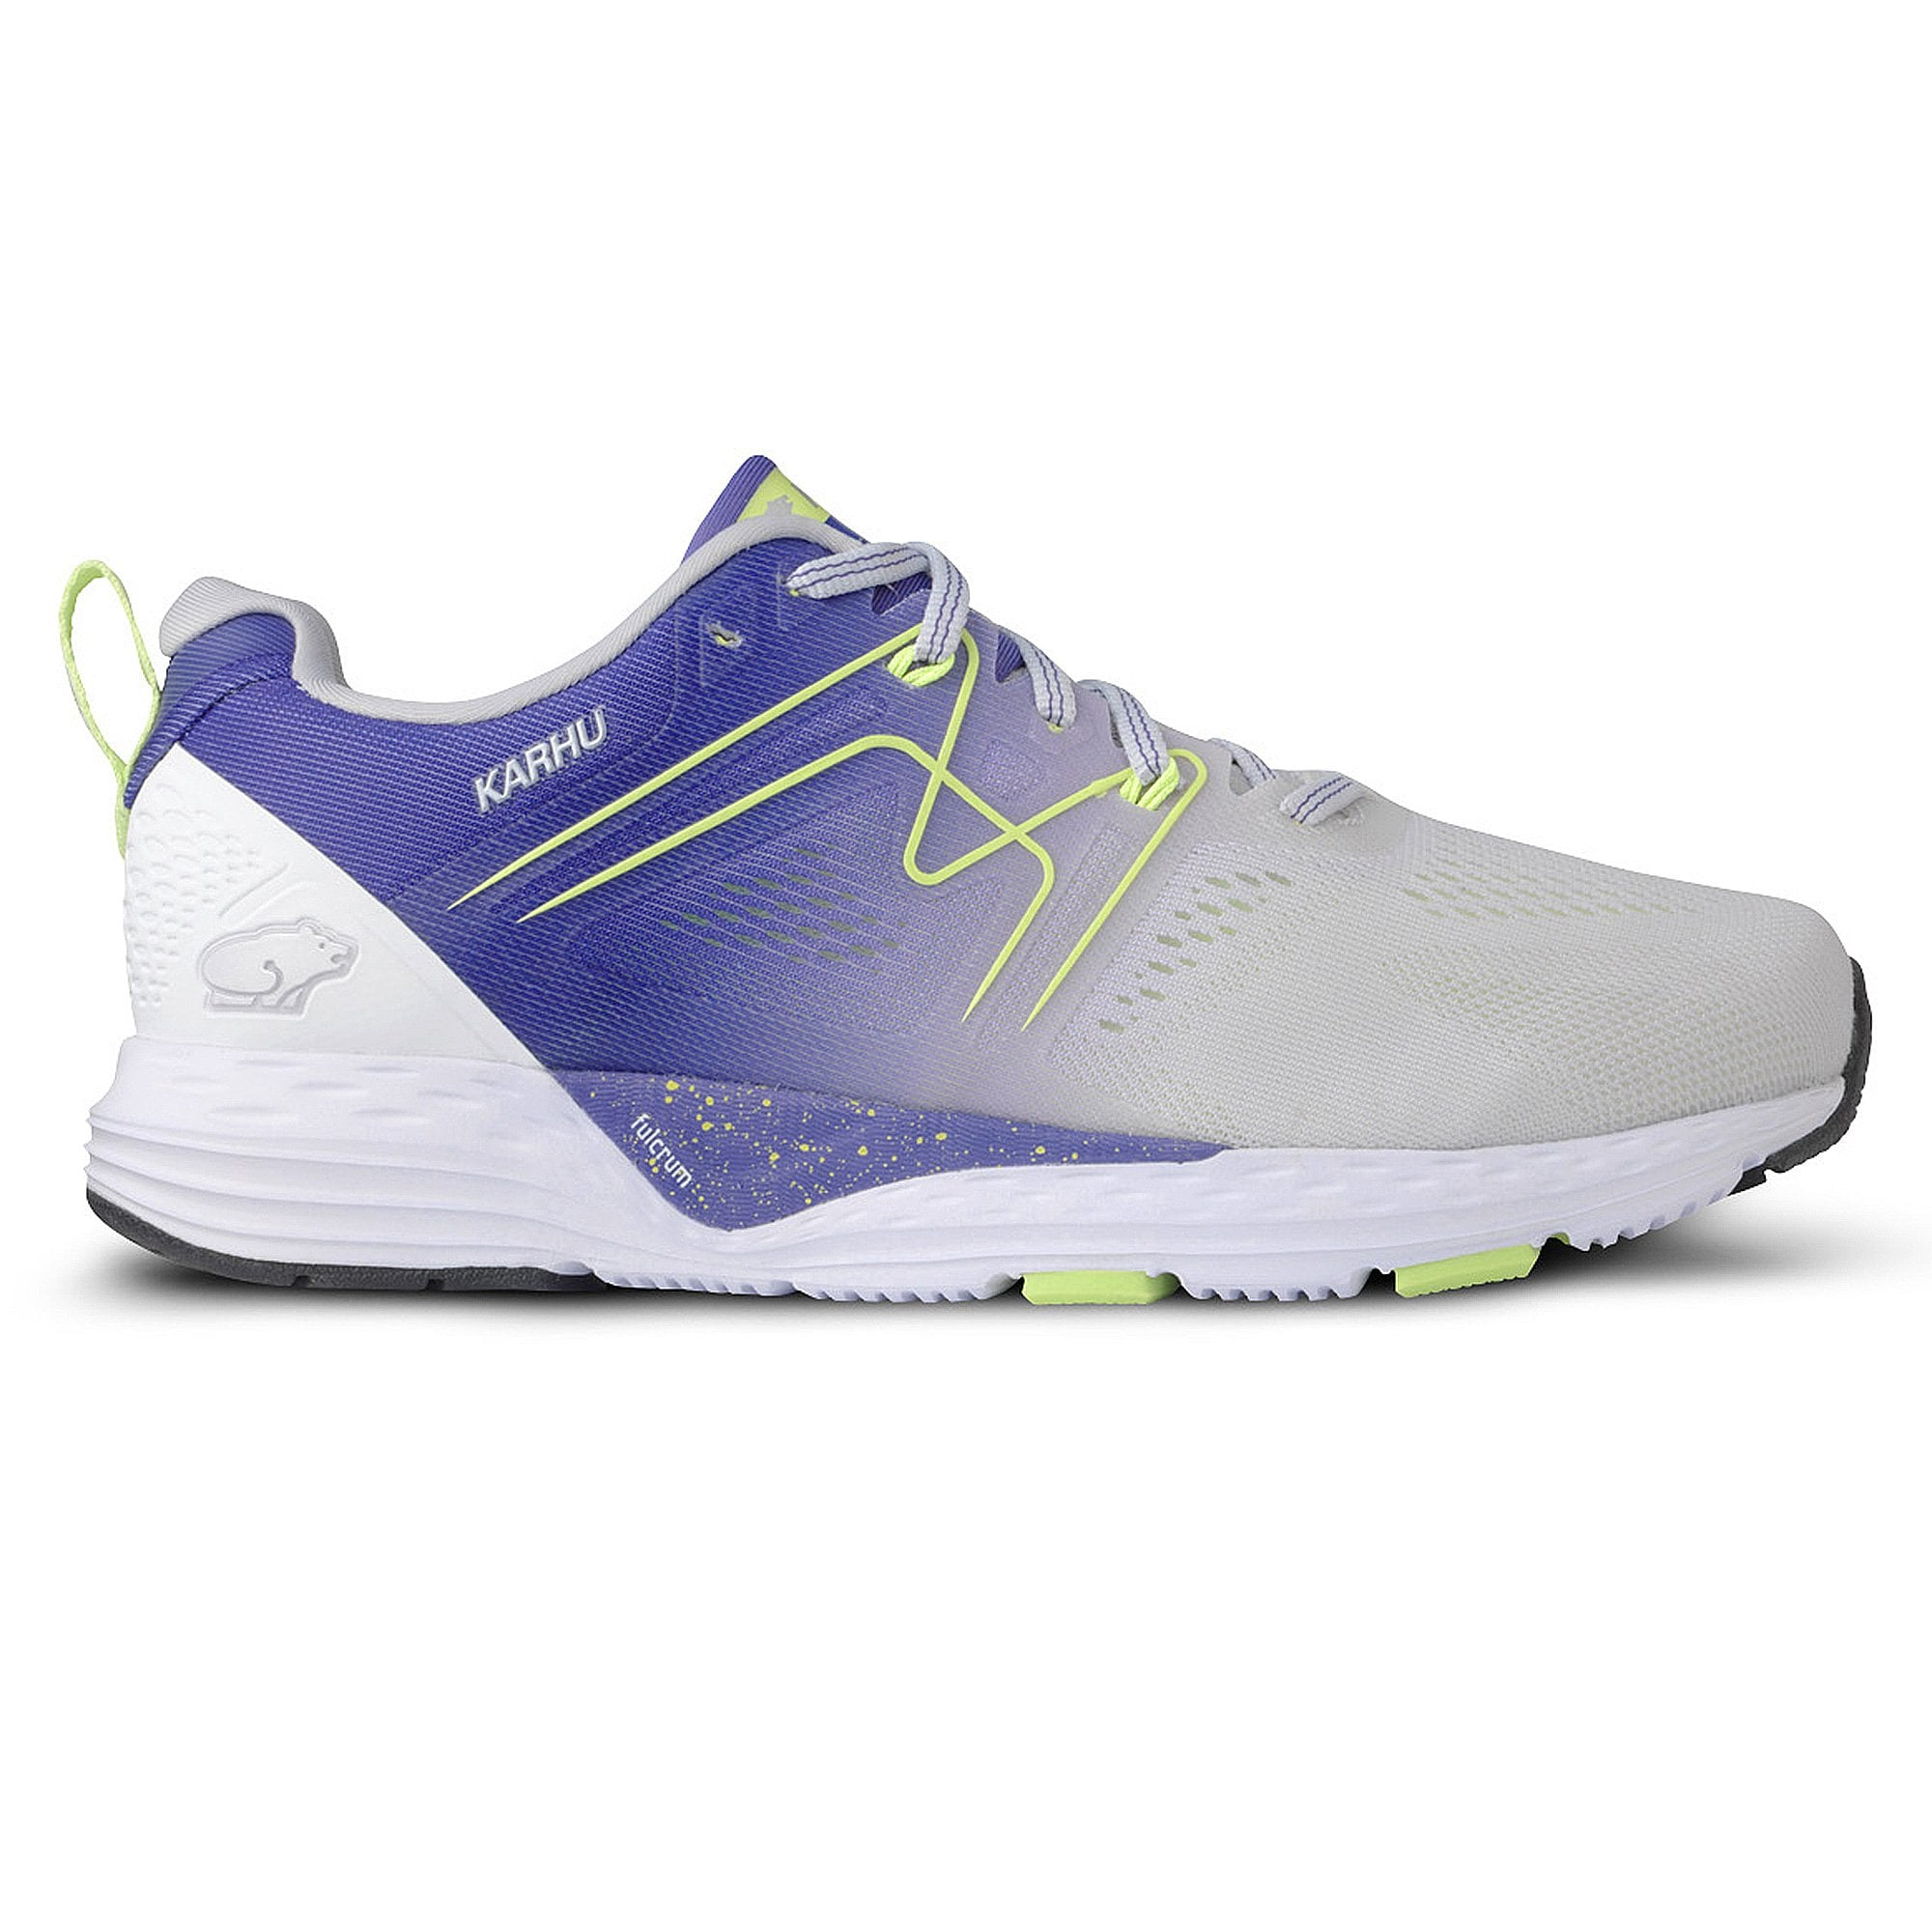 Fusion Ortix Womens CUSHIONED SUPPORT